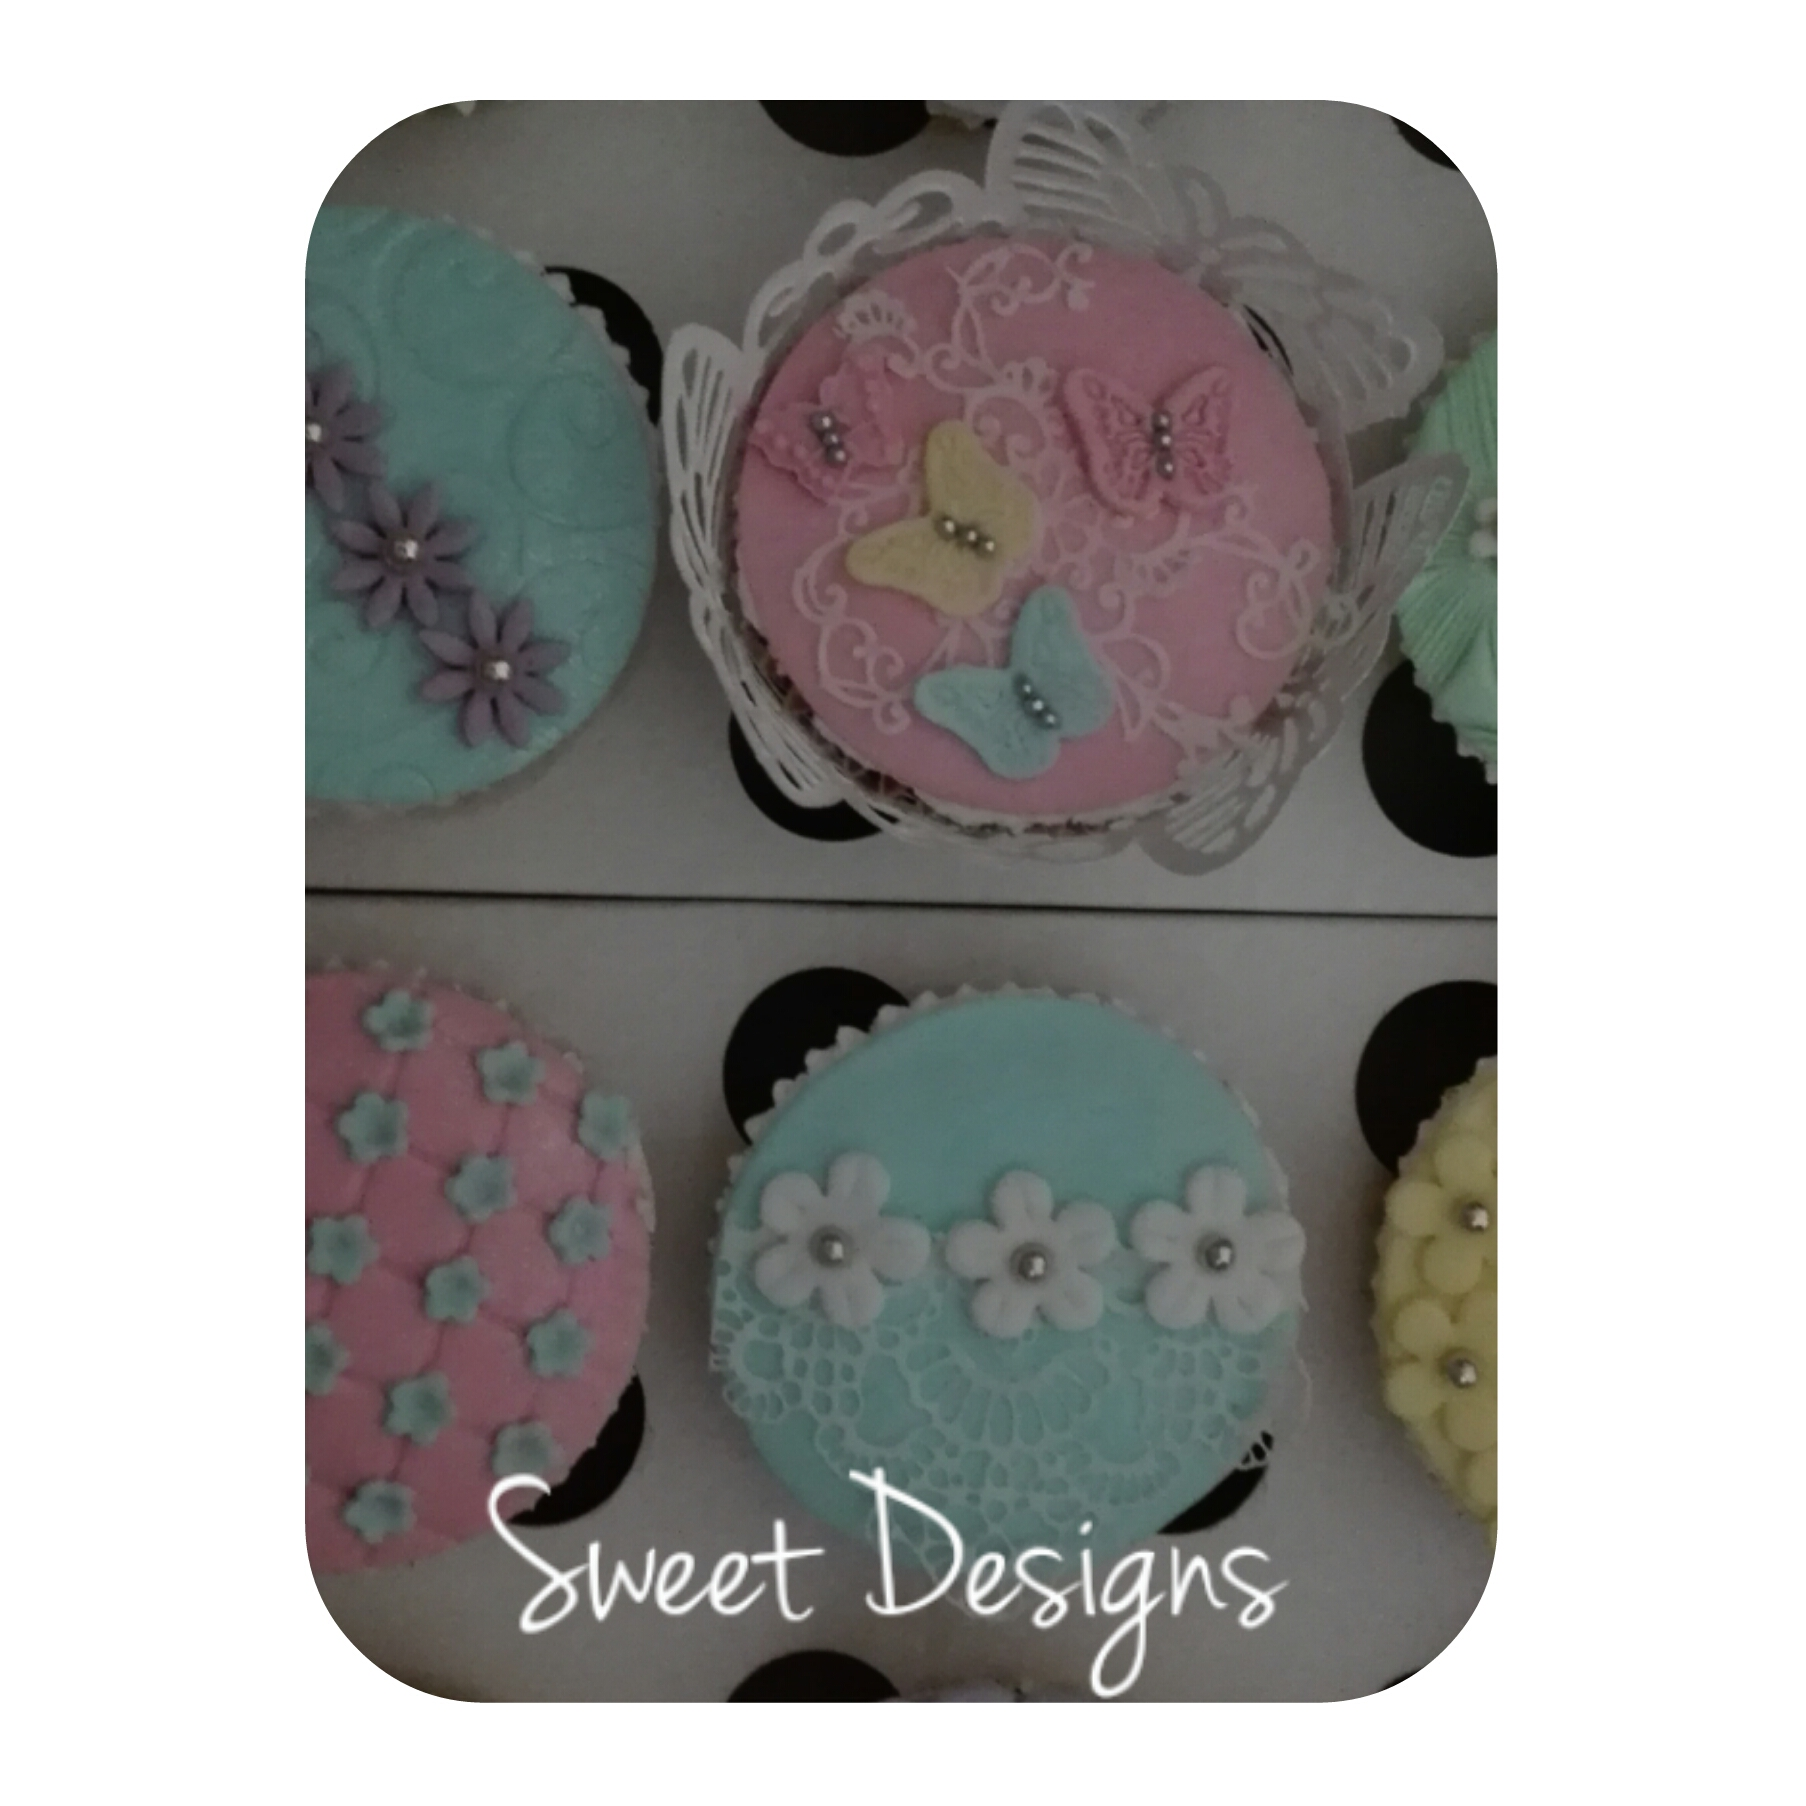 Fondant Cupcakes with little flowers decorations